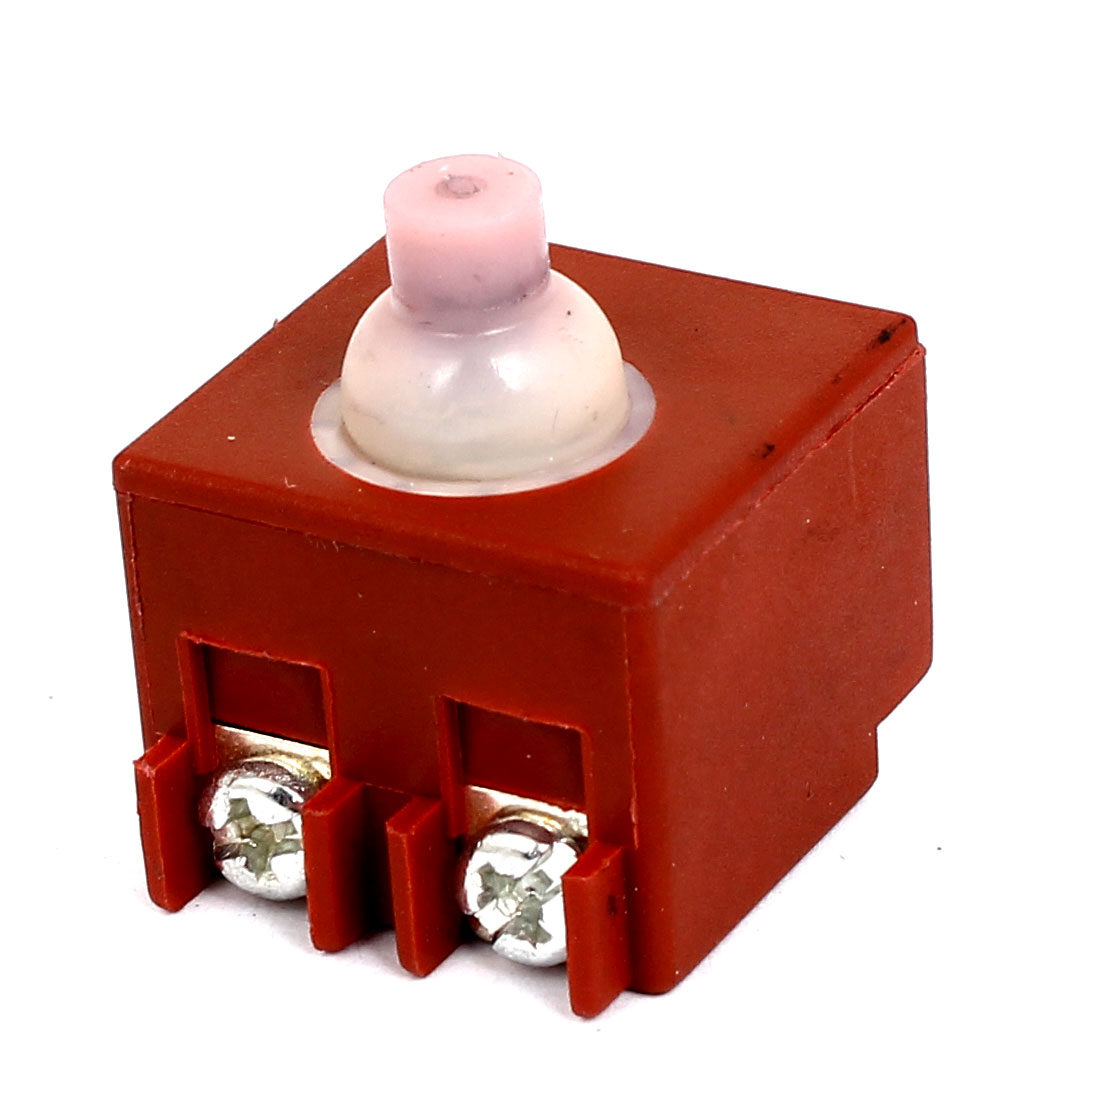 AC 125V 5A/250V 10A Momentary Contact Non-locking Push Button Switch